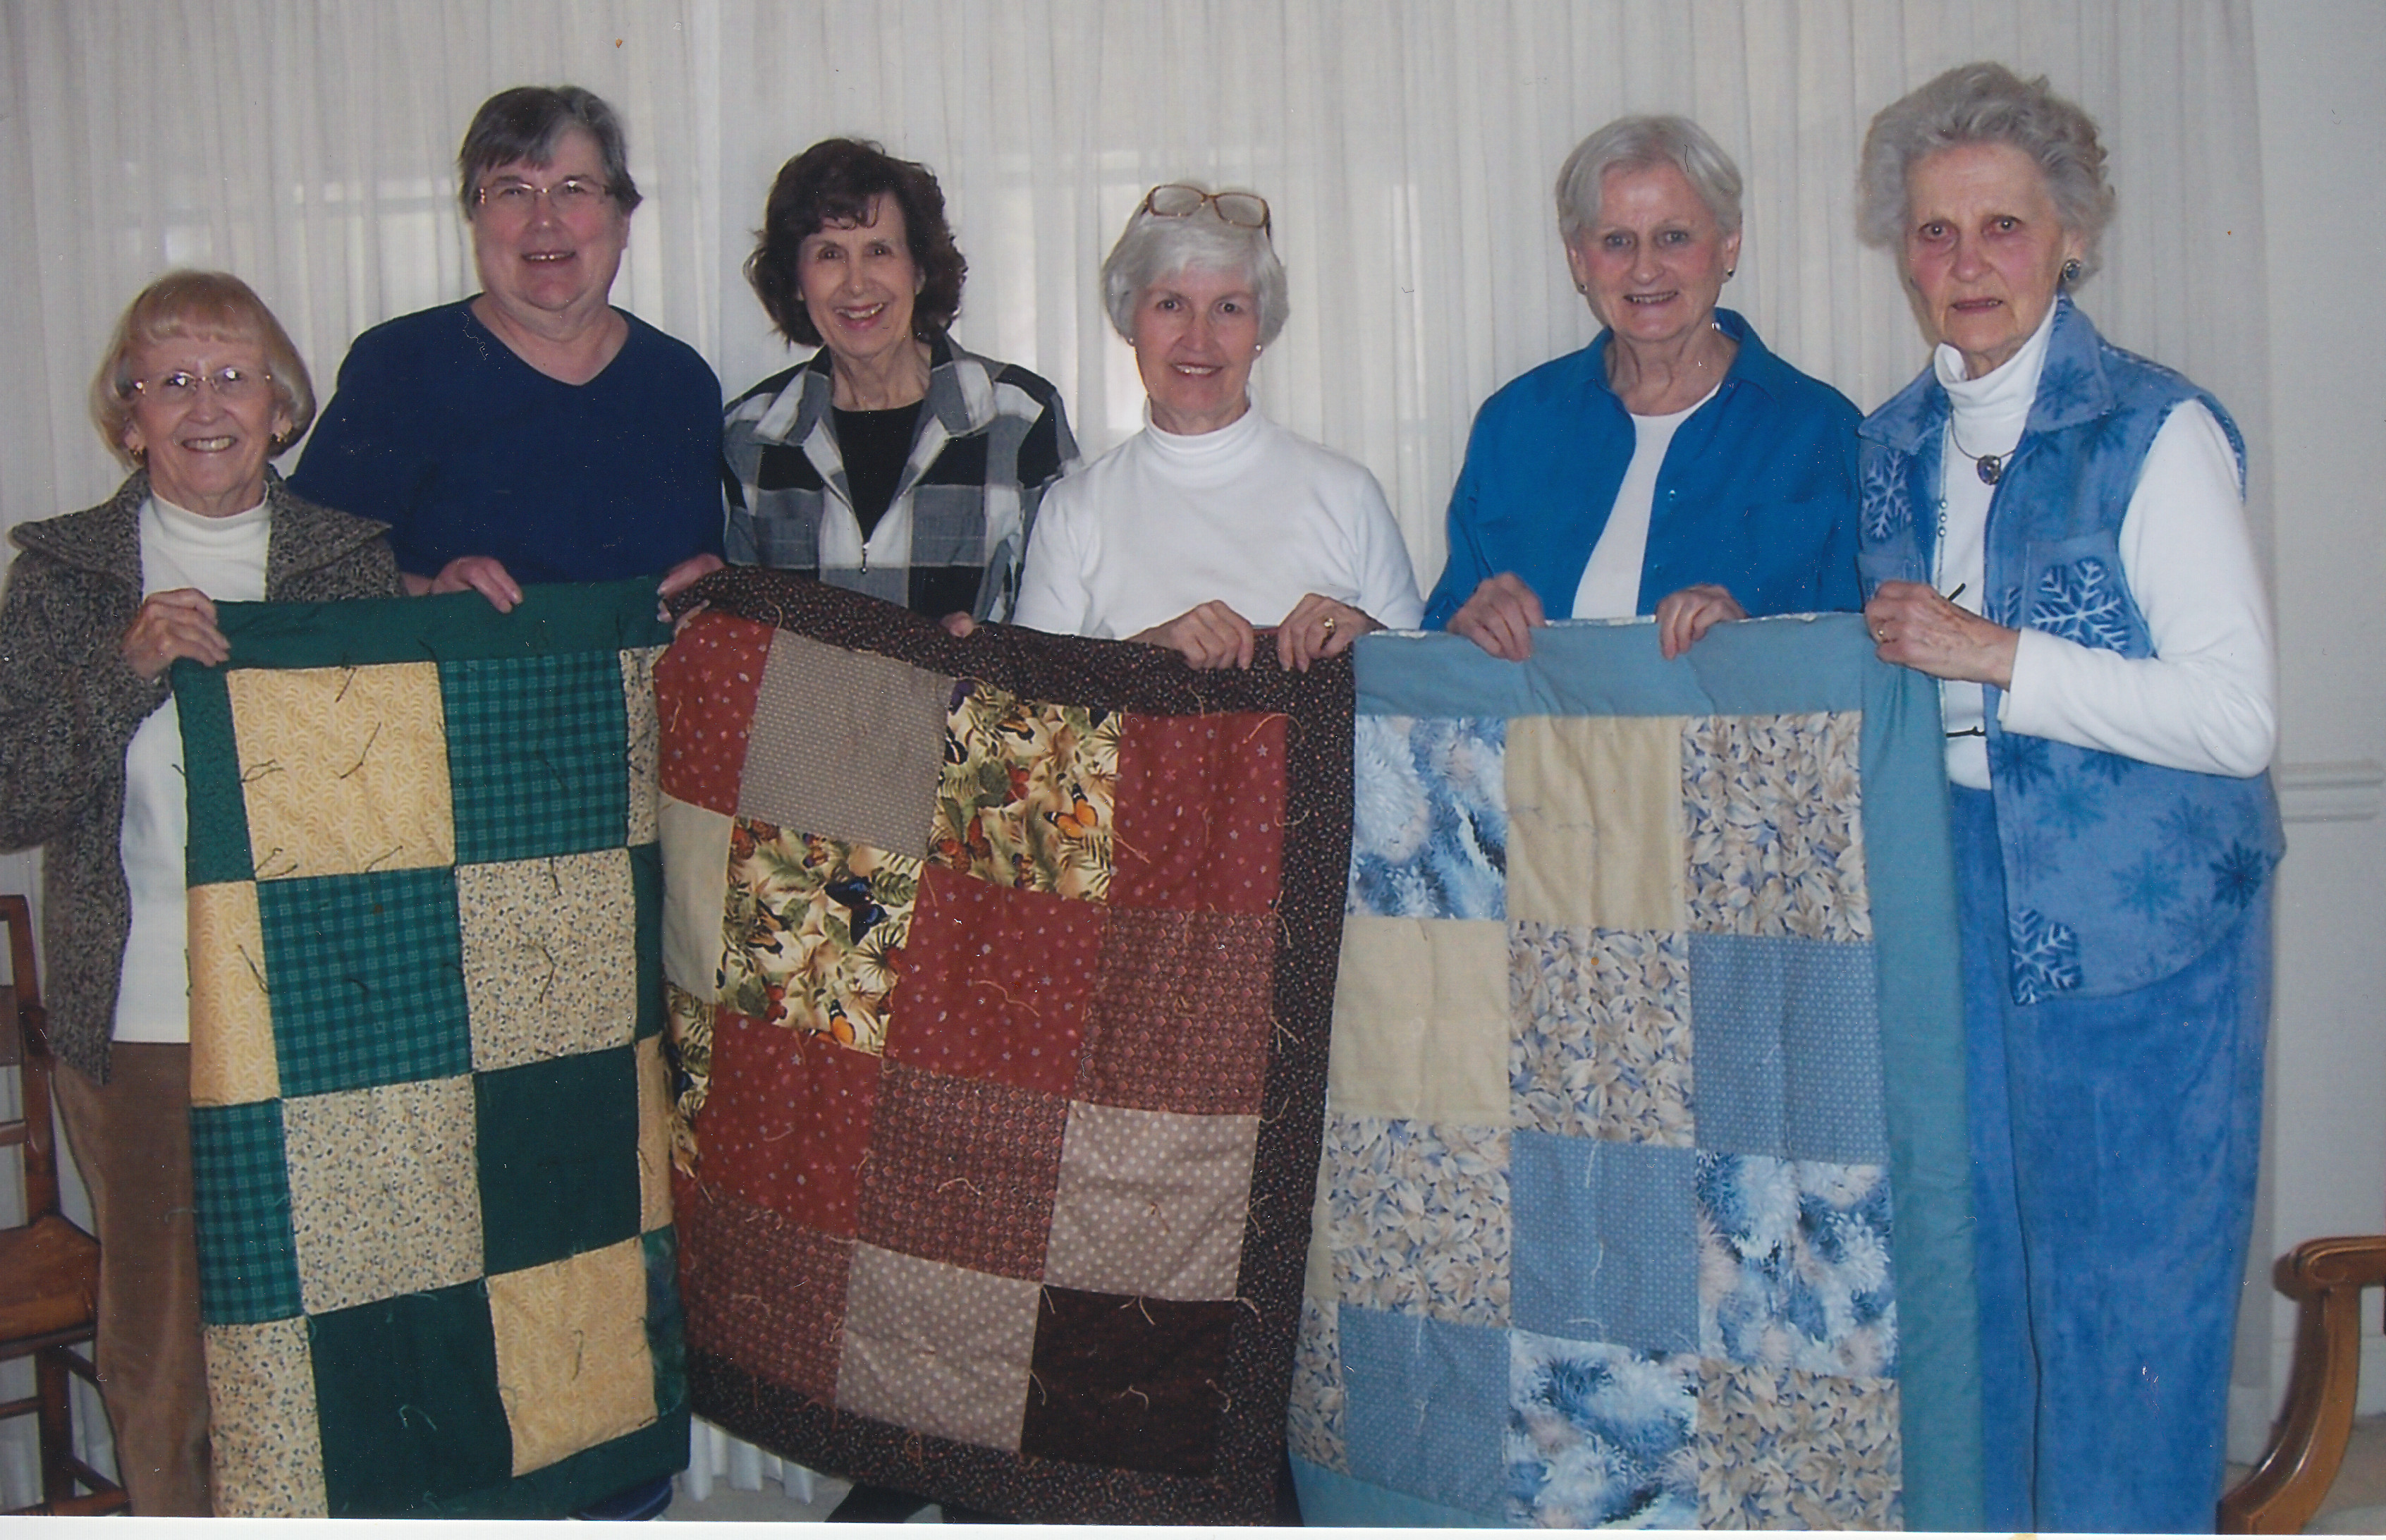 photo of quilters with quilts